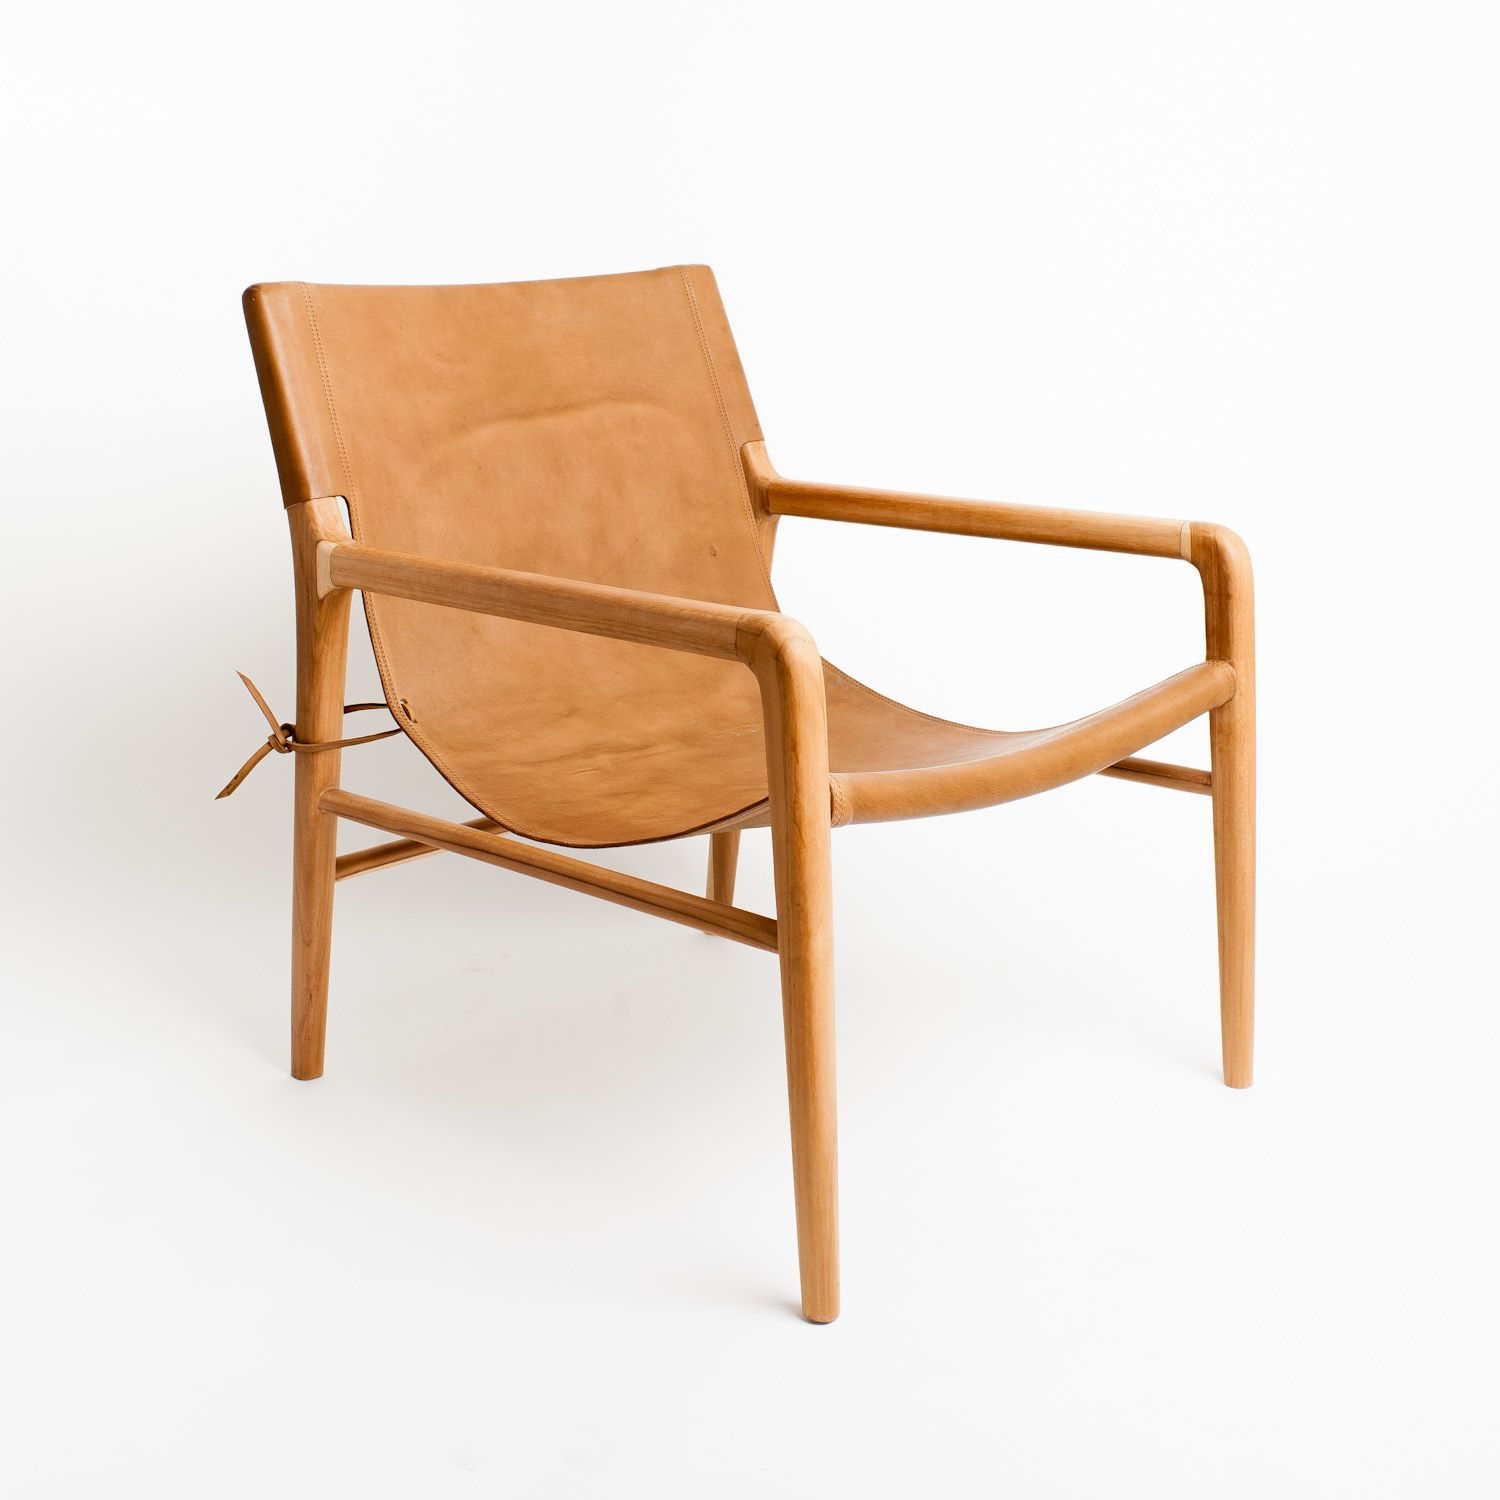 Sling Chairs For Sale Folding Chair Singapore The Smith Leather In Raw Tan Available At Www Barnabylane Com Au